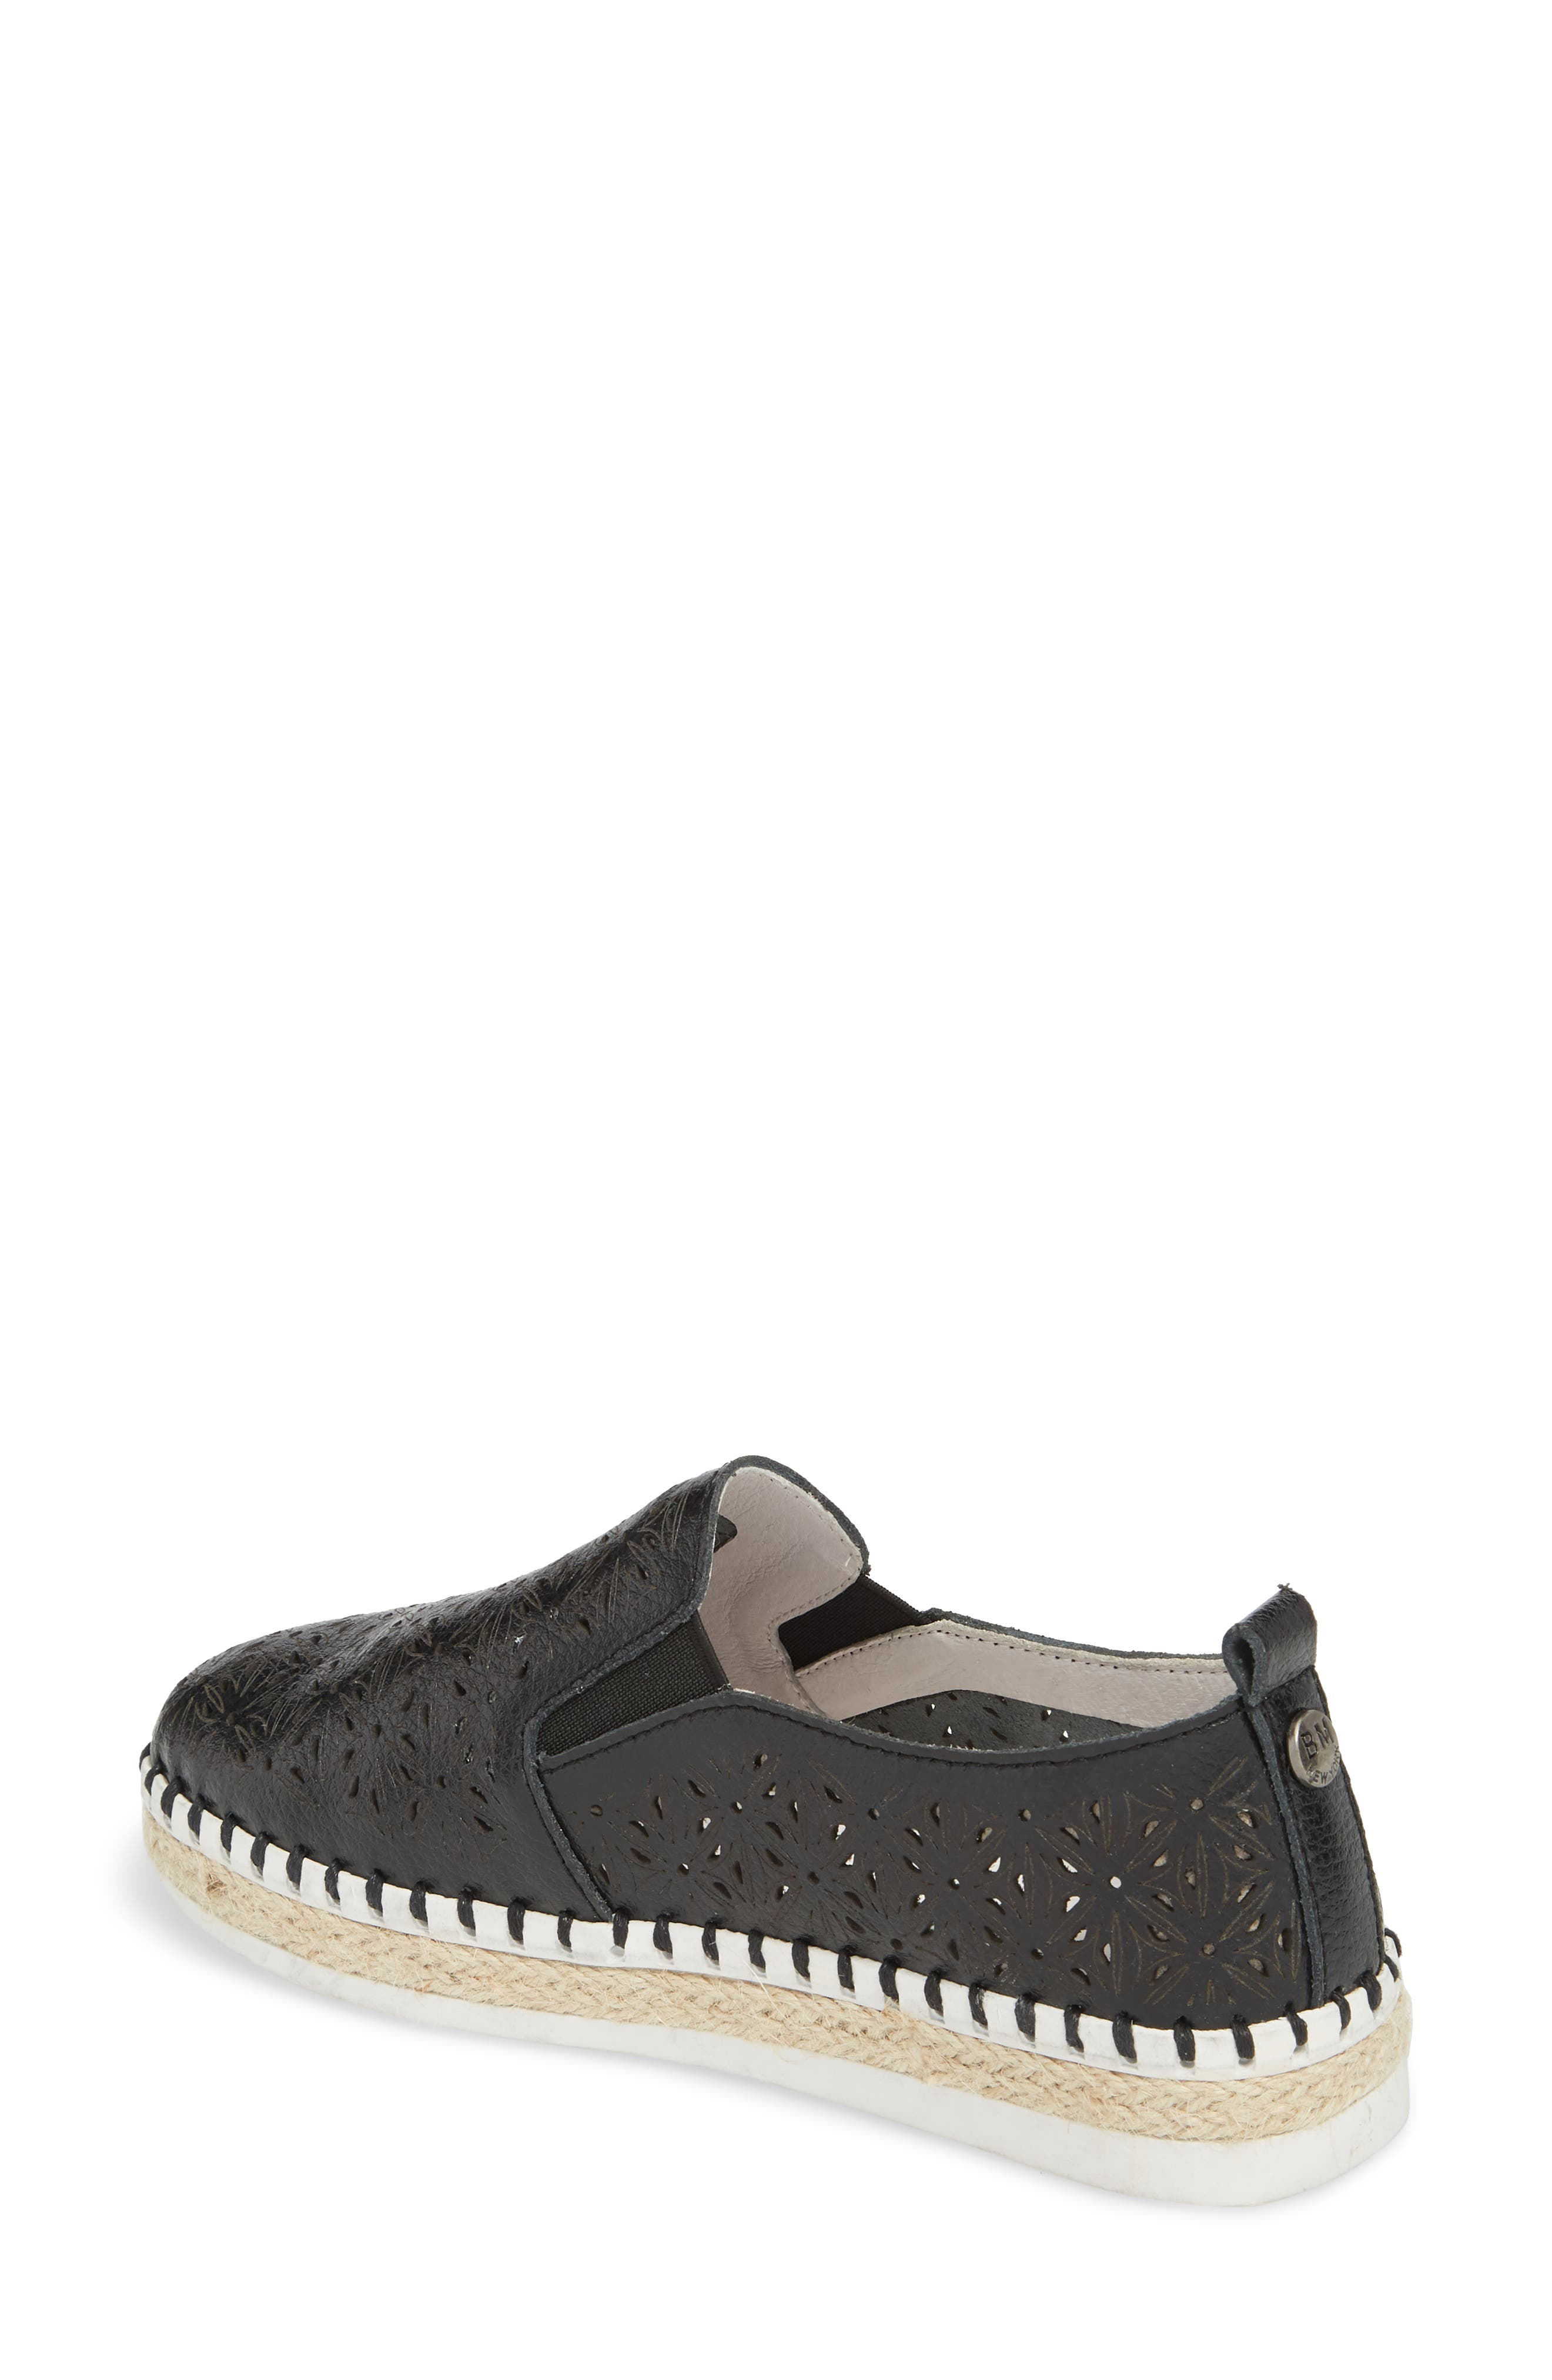 TW101 Espadrille Flat,                             Alternate thumbnail 2, color,                             BLACK LEATHER